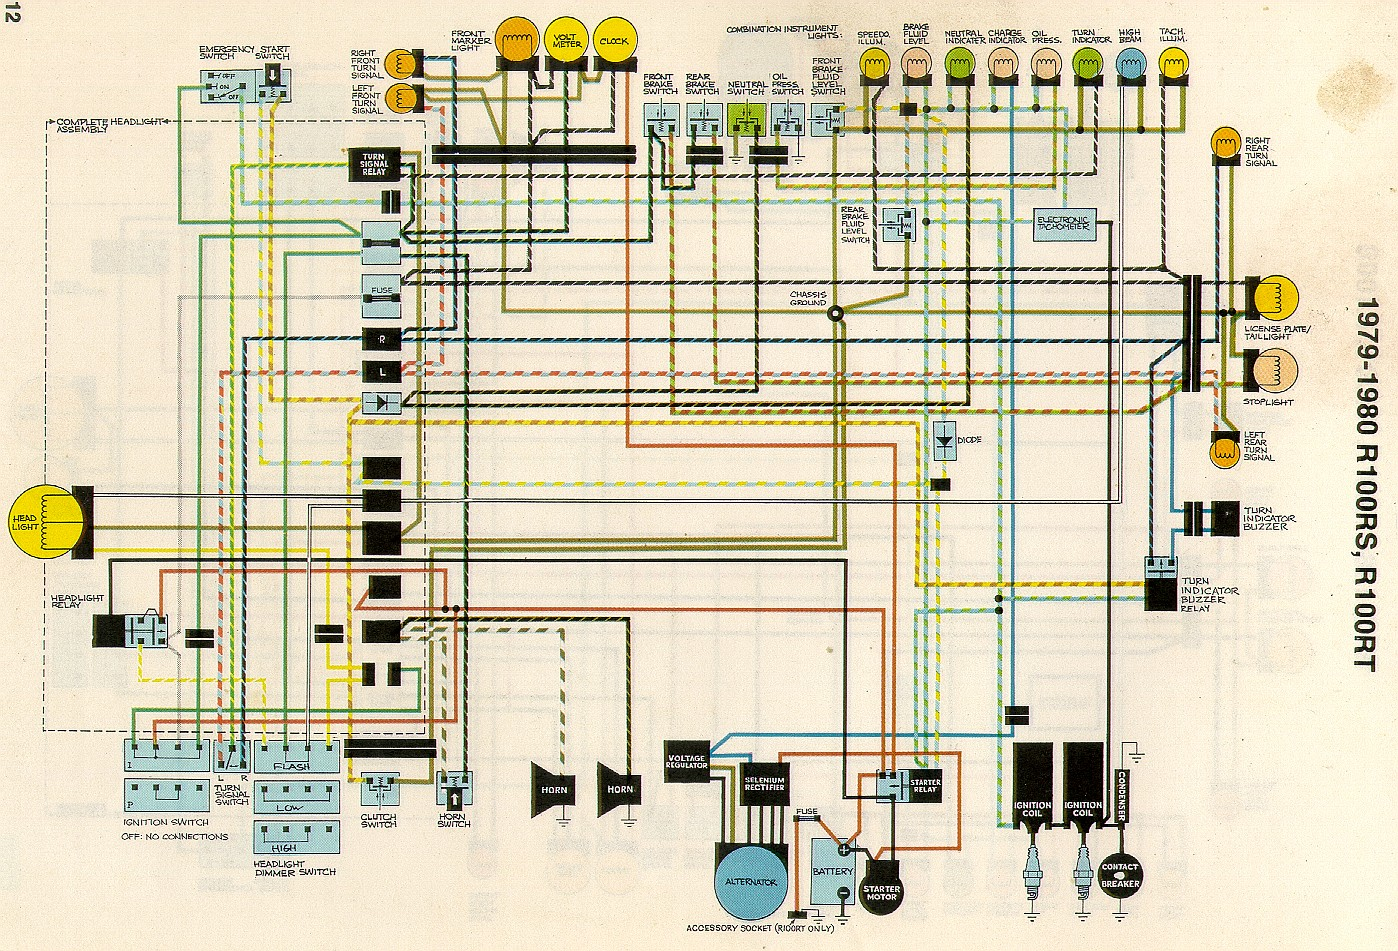 bmw r100 wiring diagram bmw r100 diode board wiring diagram wiring rh parsplus co BMW Motorcycle Wiring Diagrams 1998 1998 BMW Funduro Wiring-Diagram